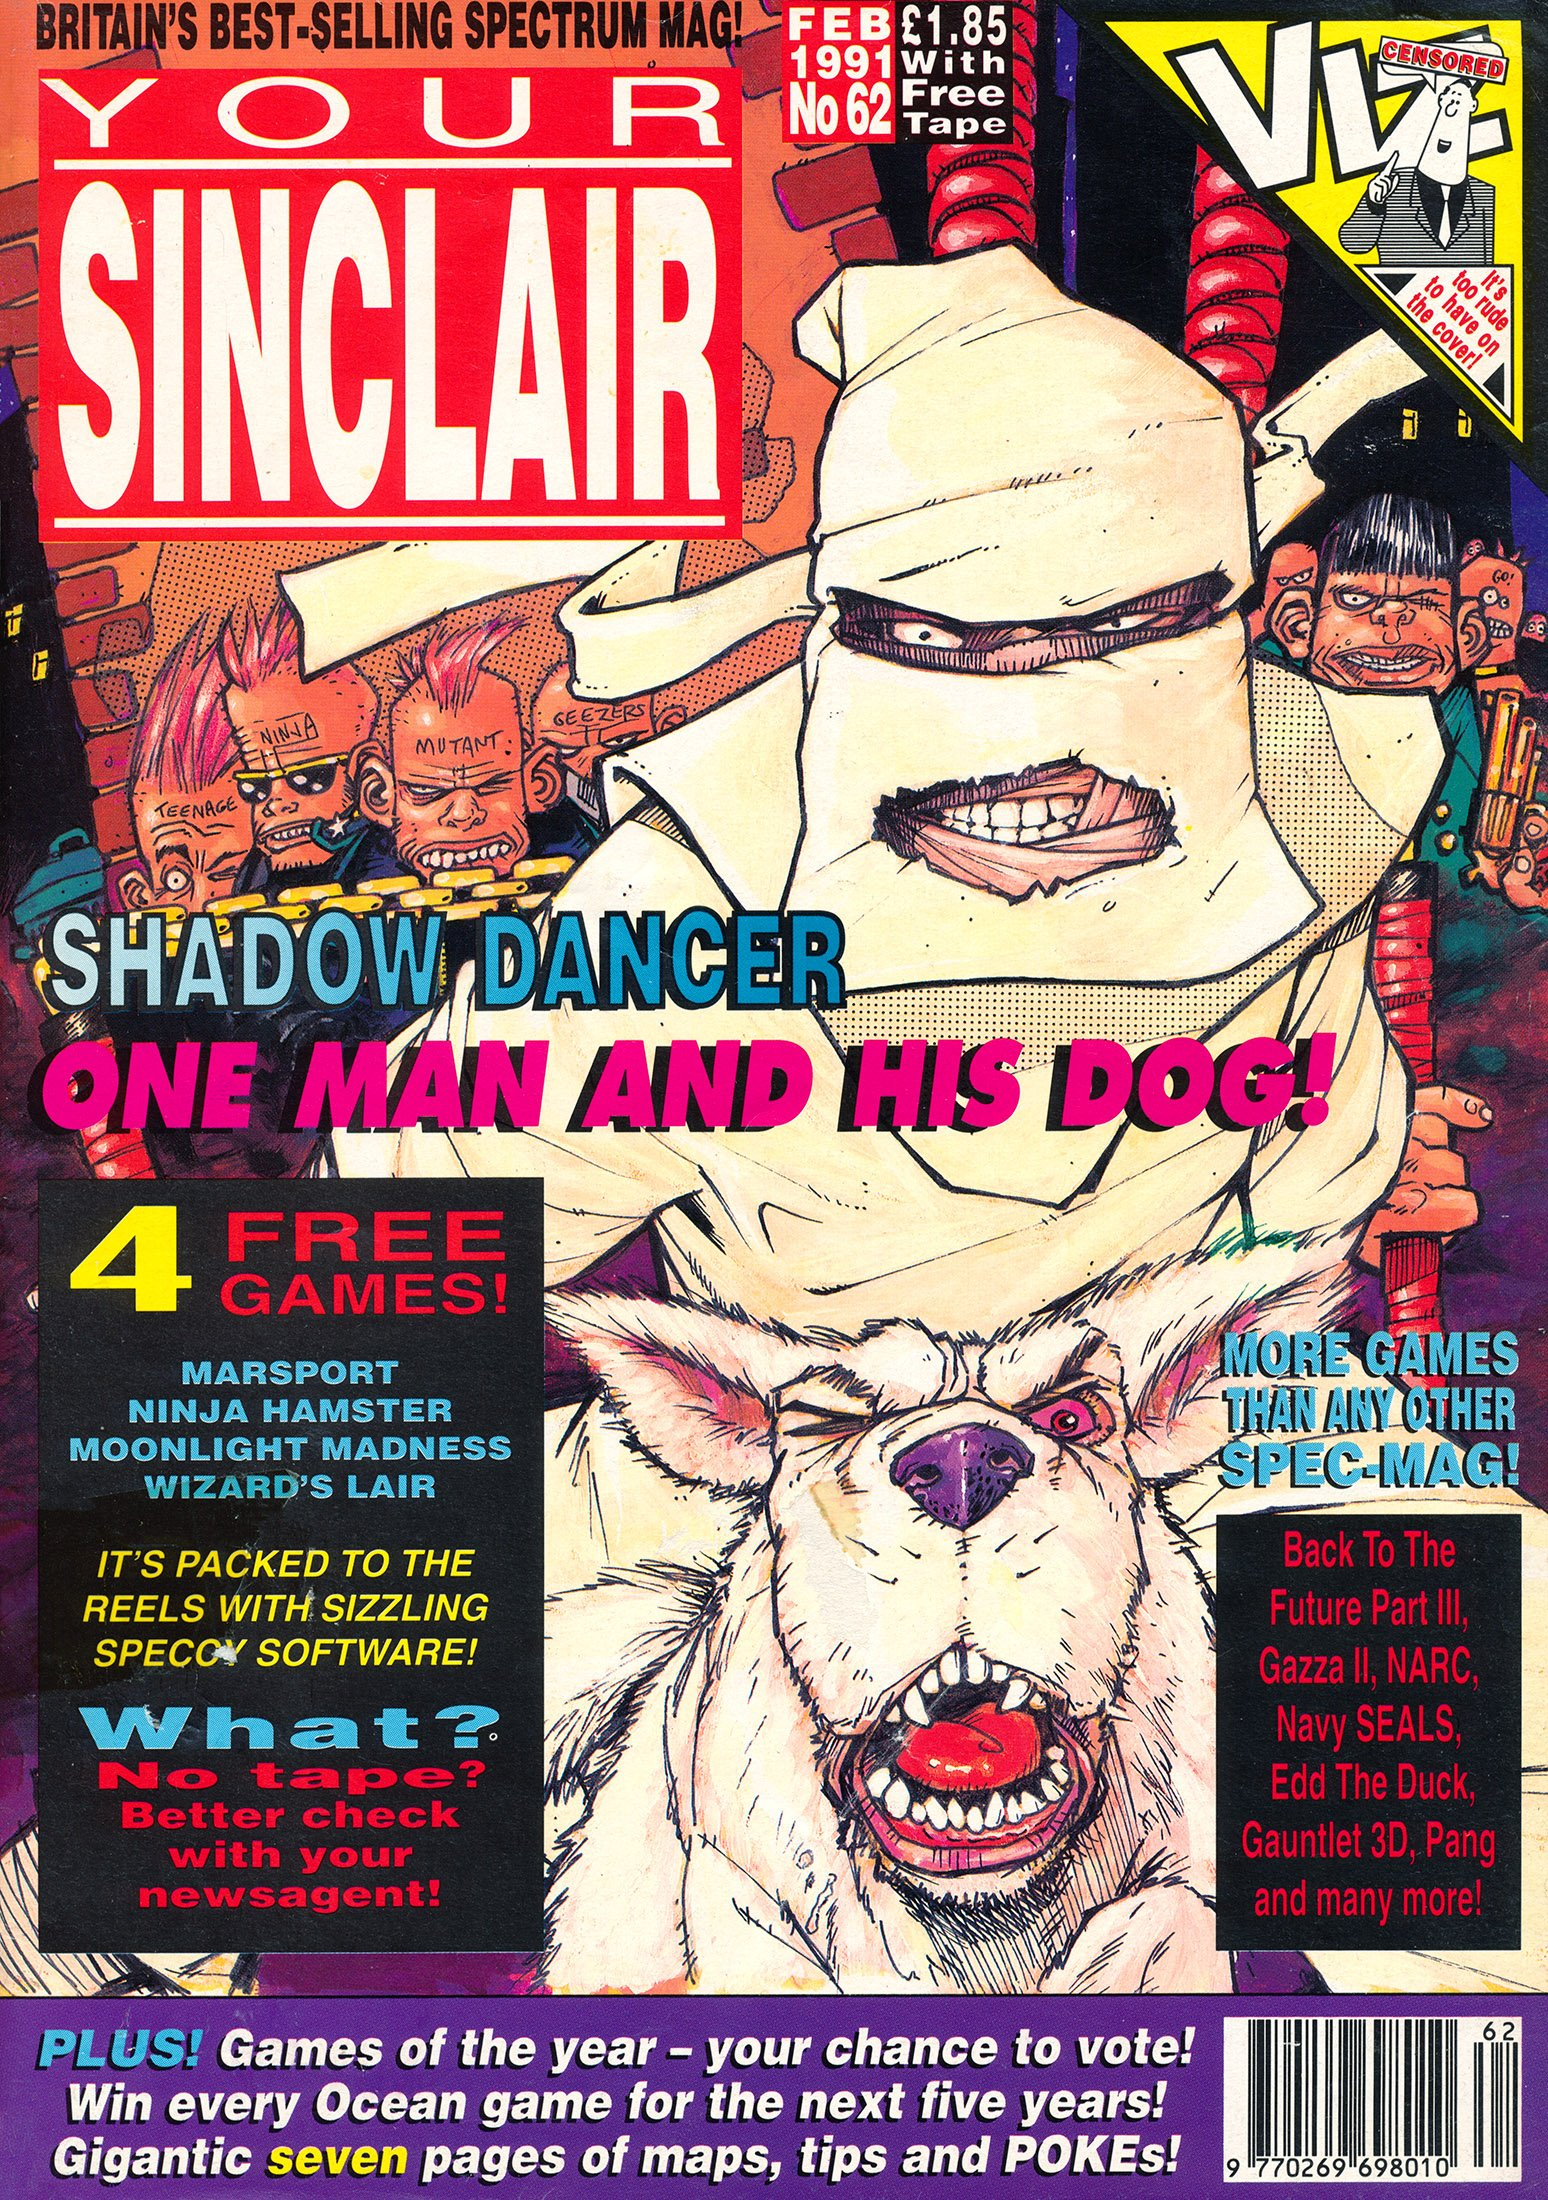 Your Sinclair Issue 62 (February 1991)